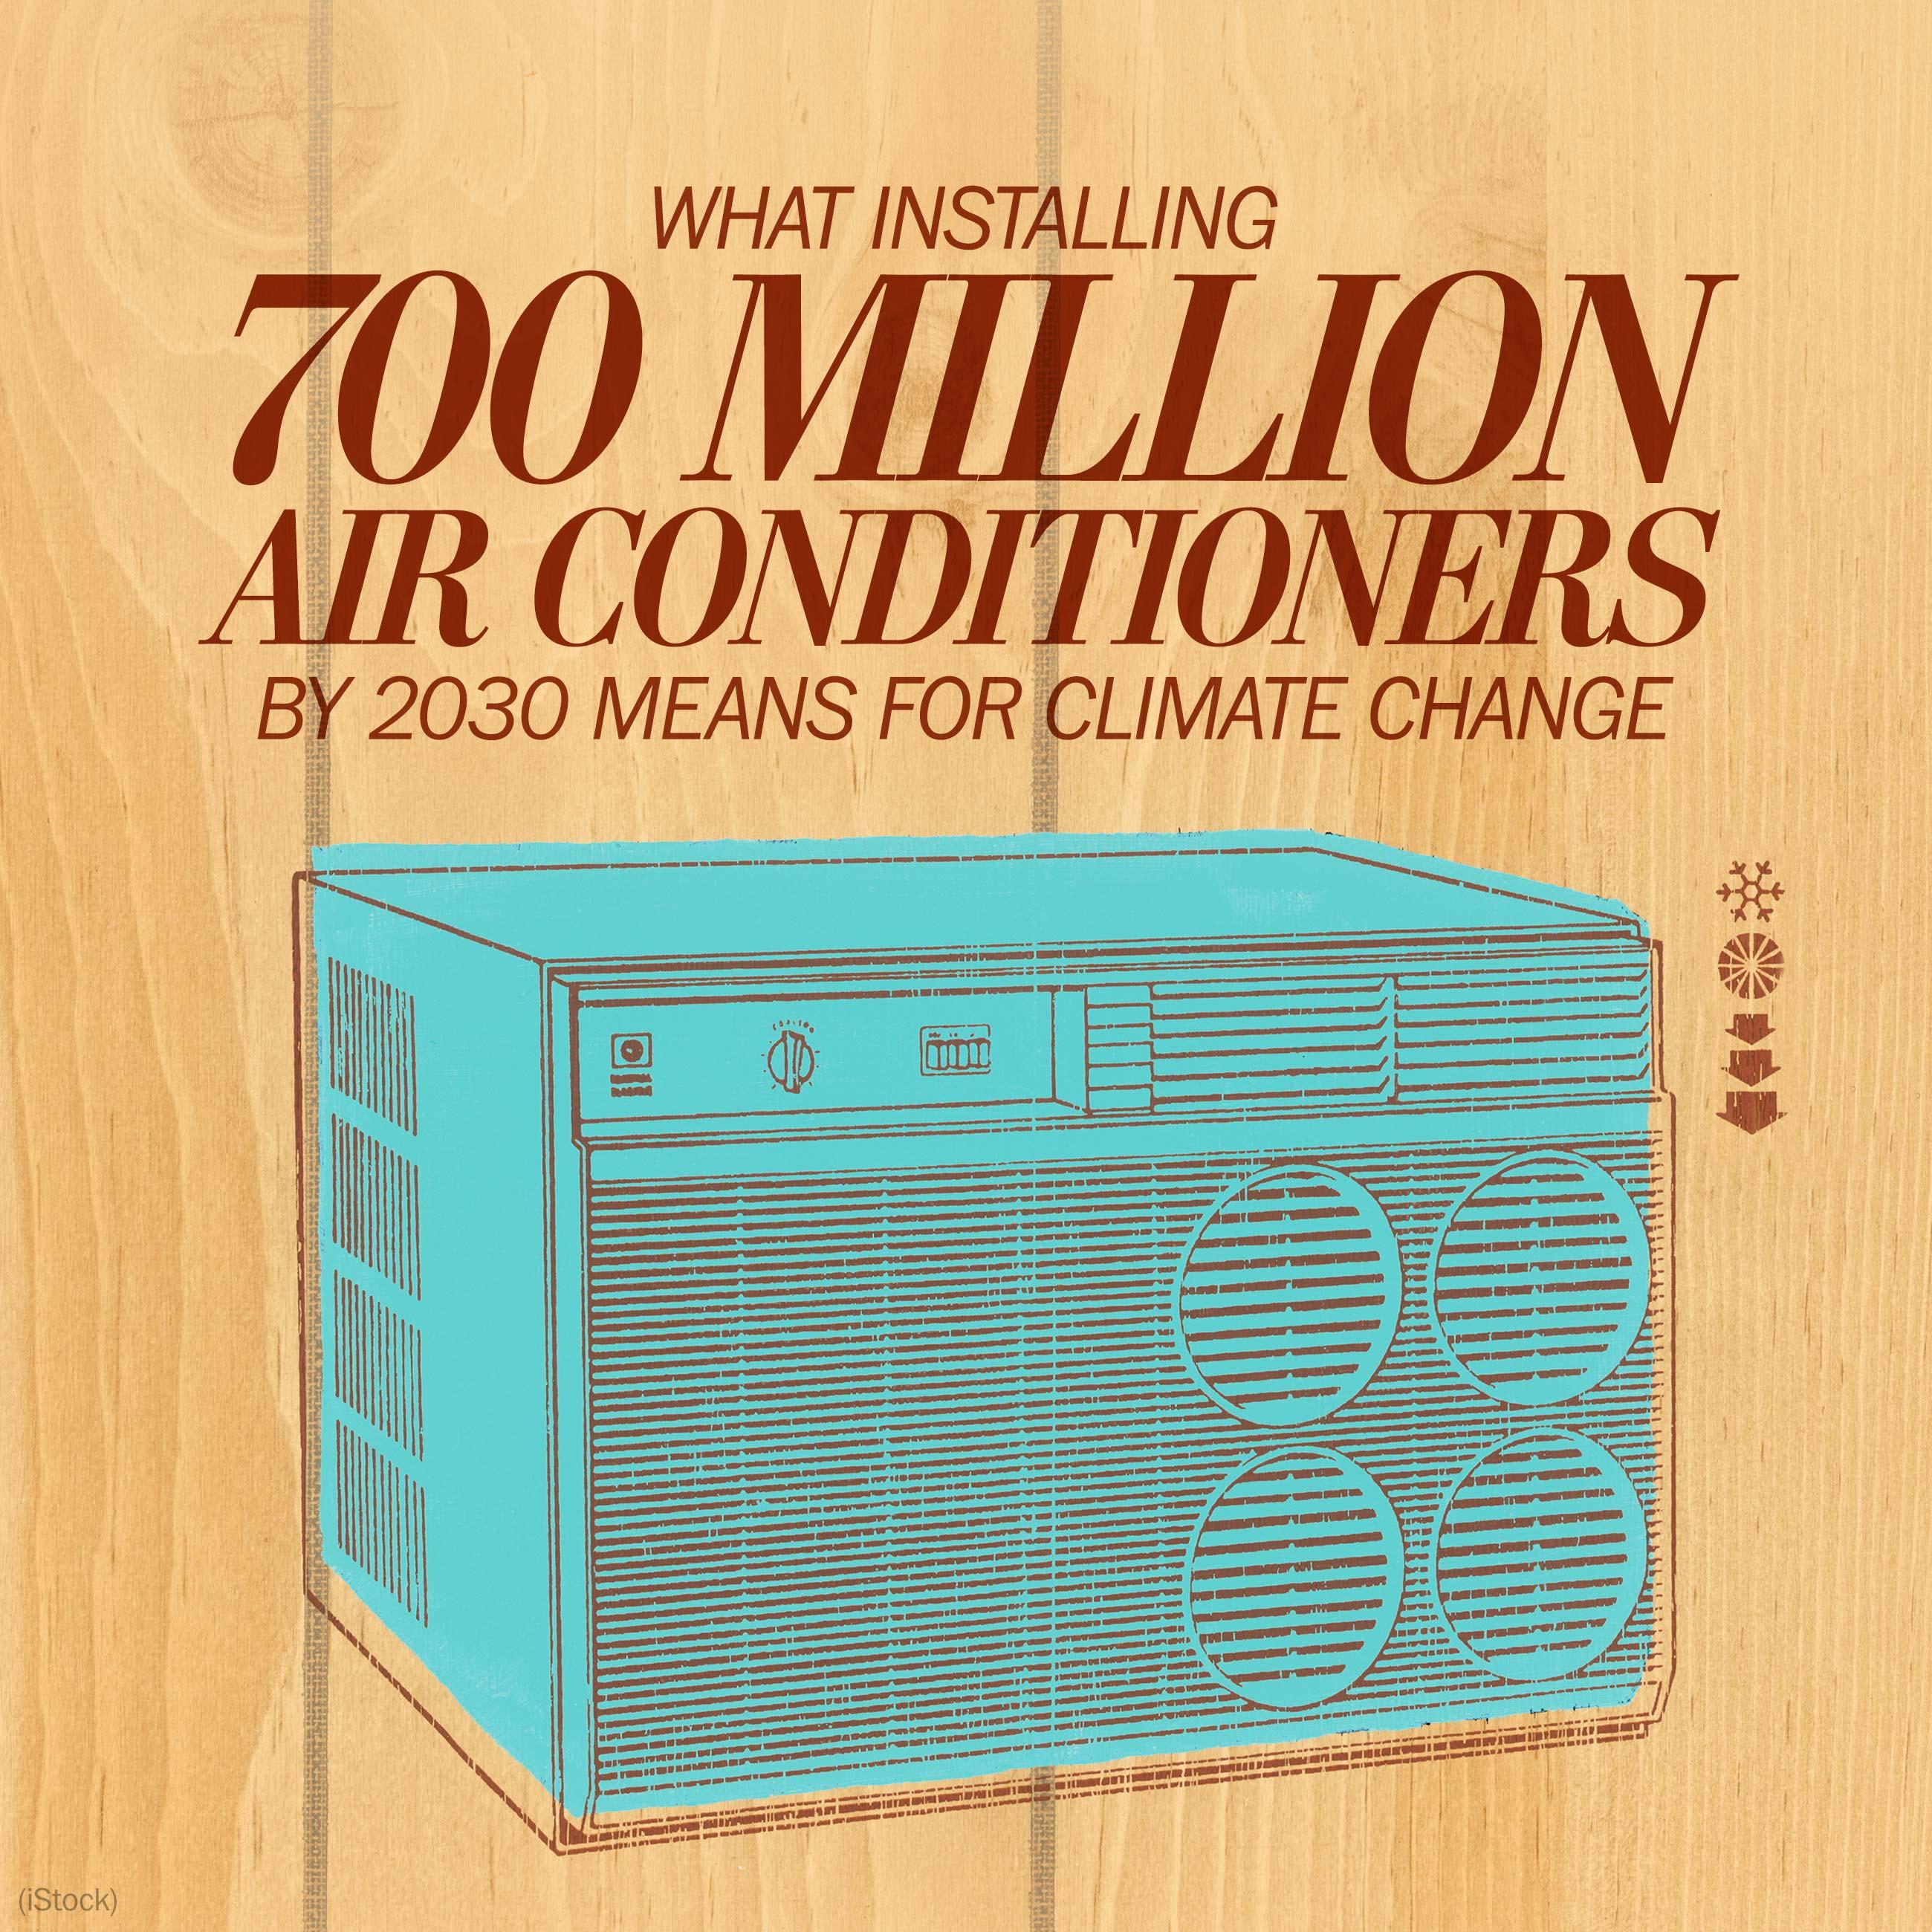 The world is about to install 700 million air conditioners. Here's what that means for the climate